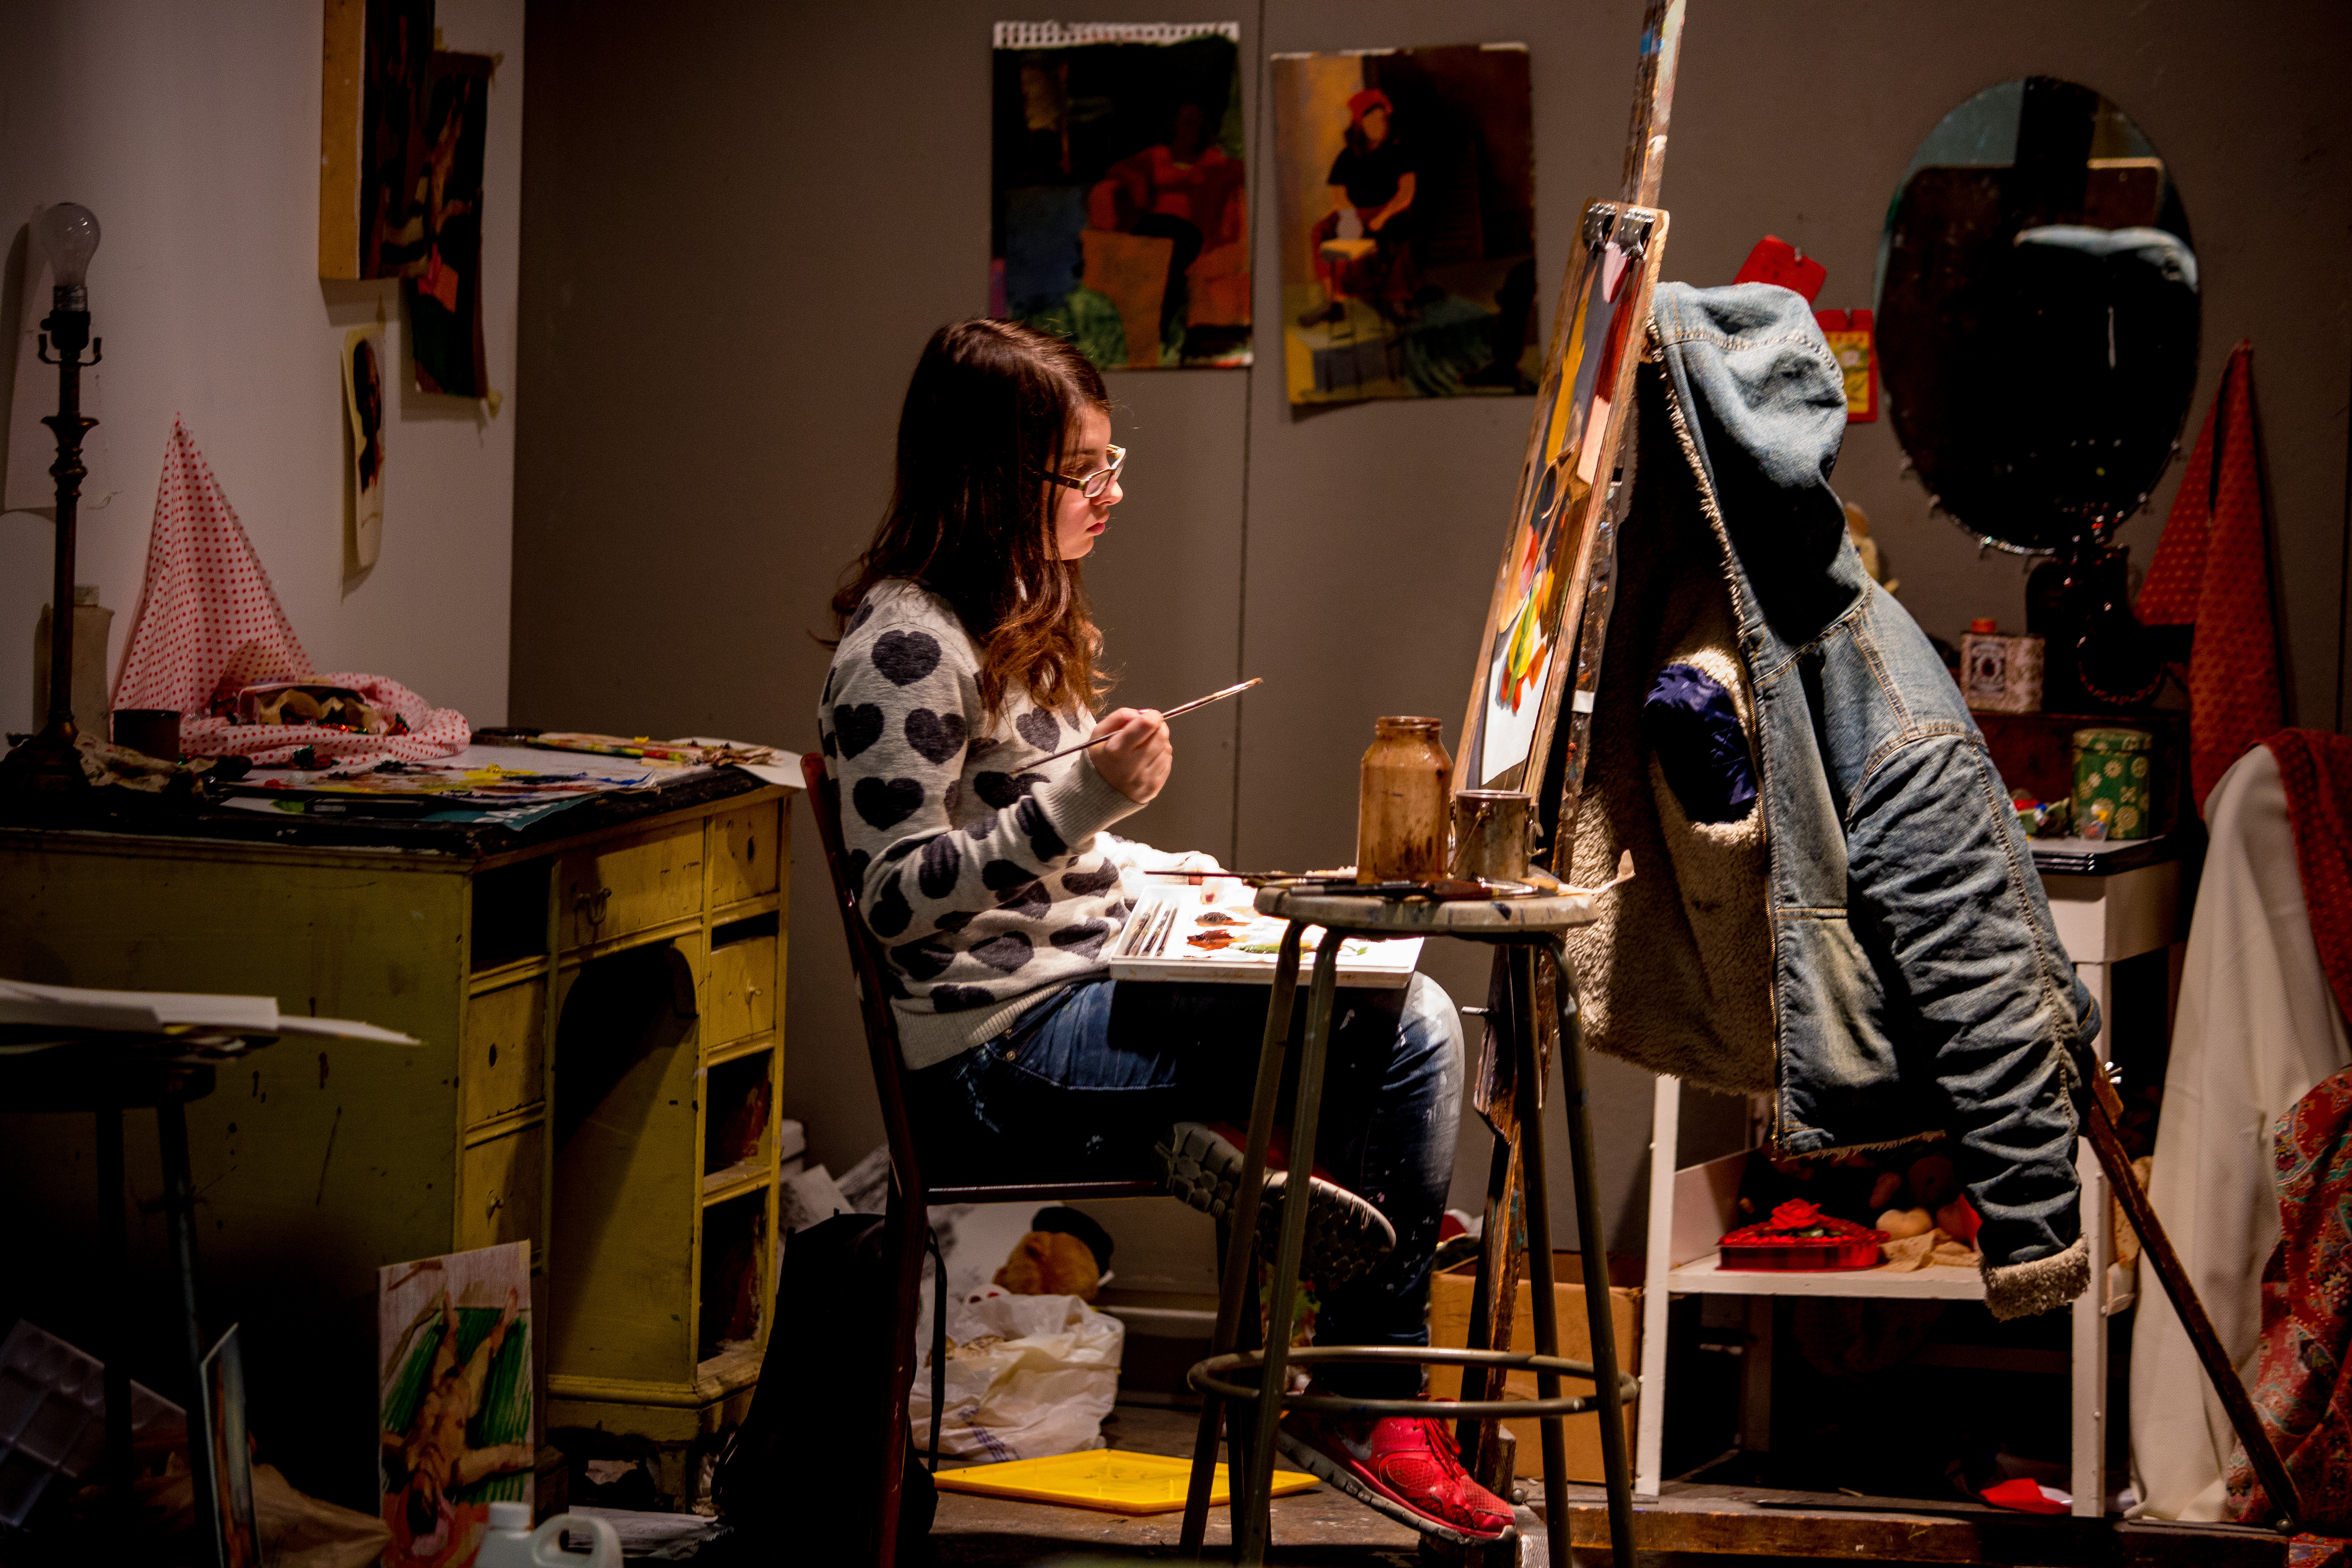 A student works on their painting in their private studio space.